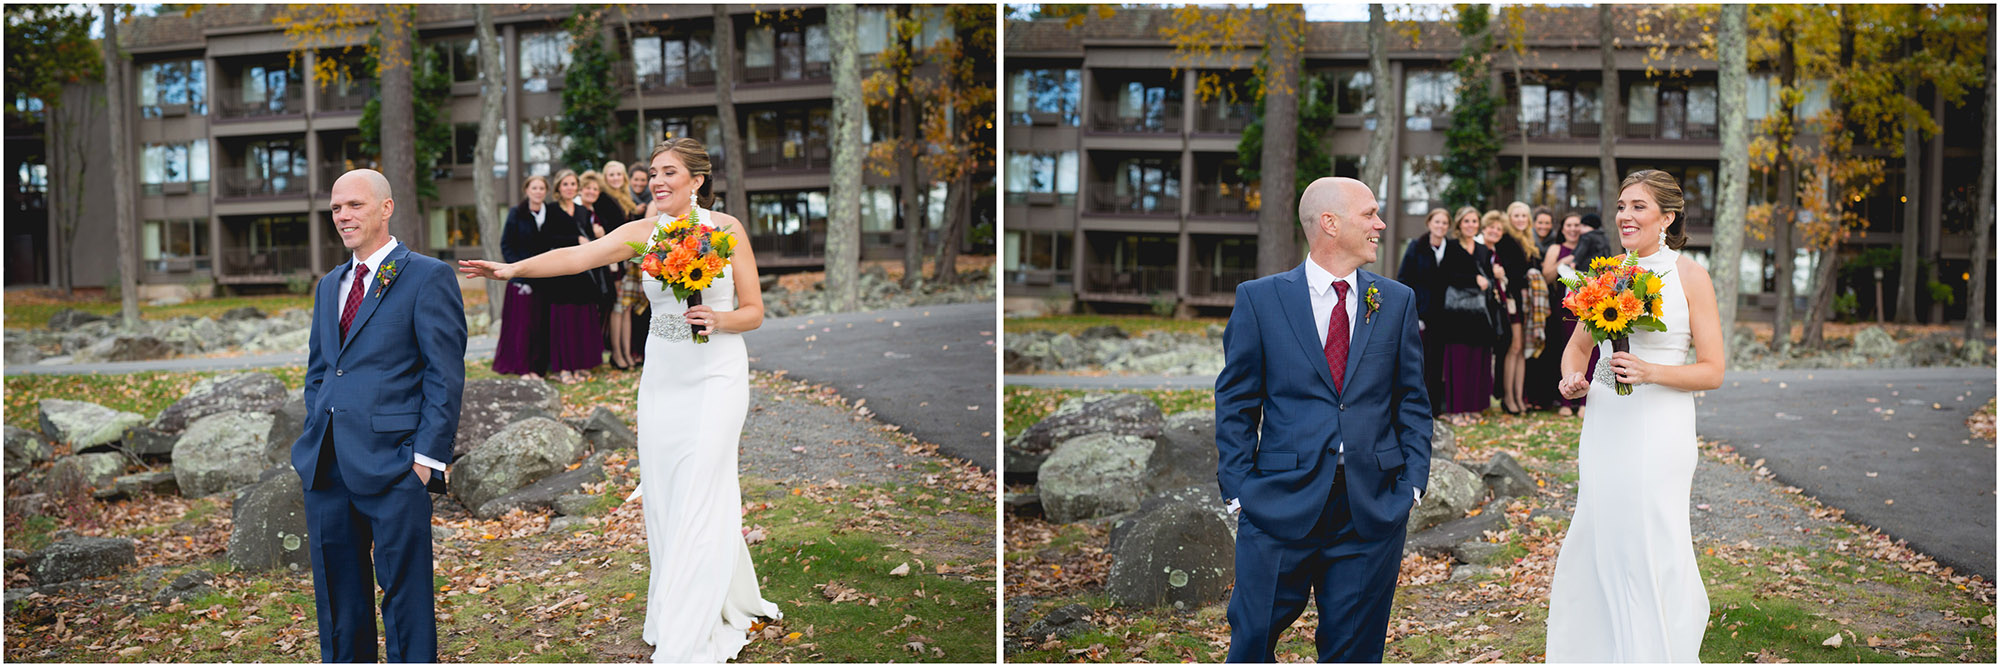 Liz & Keith Woodloch Wedding Photos 21